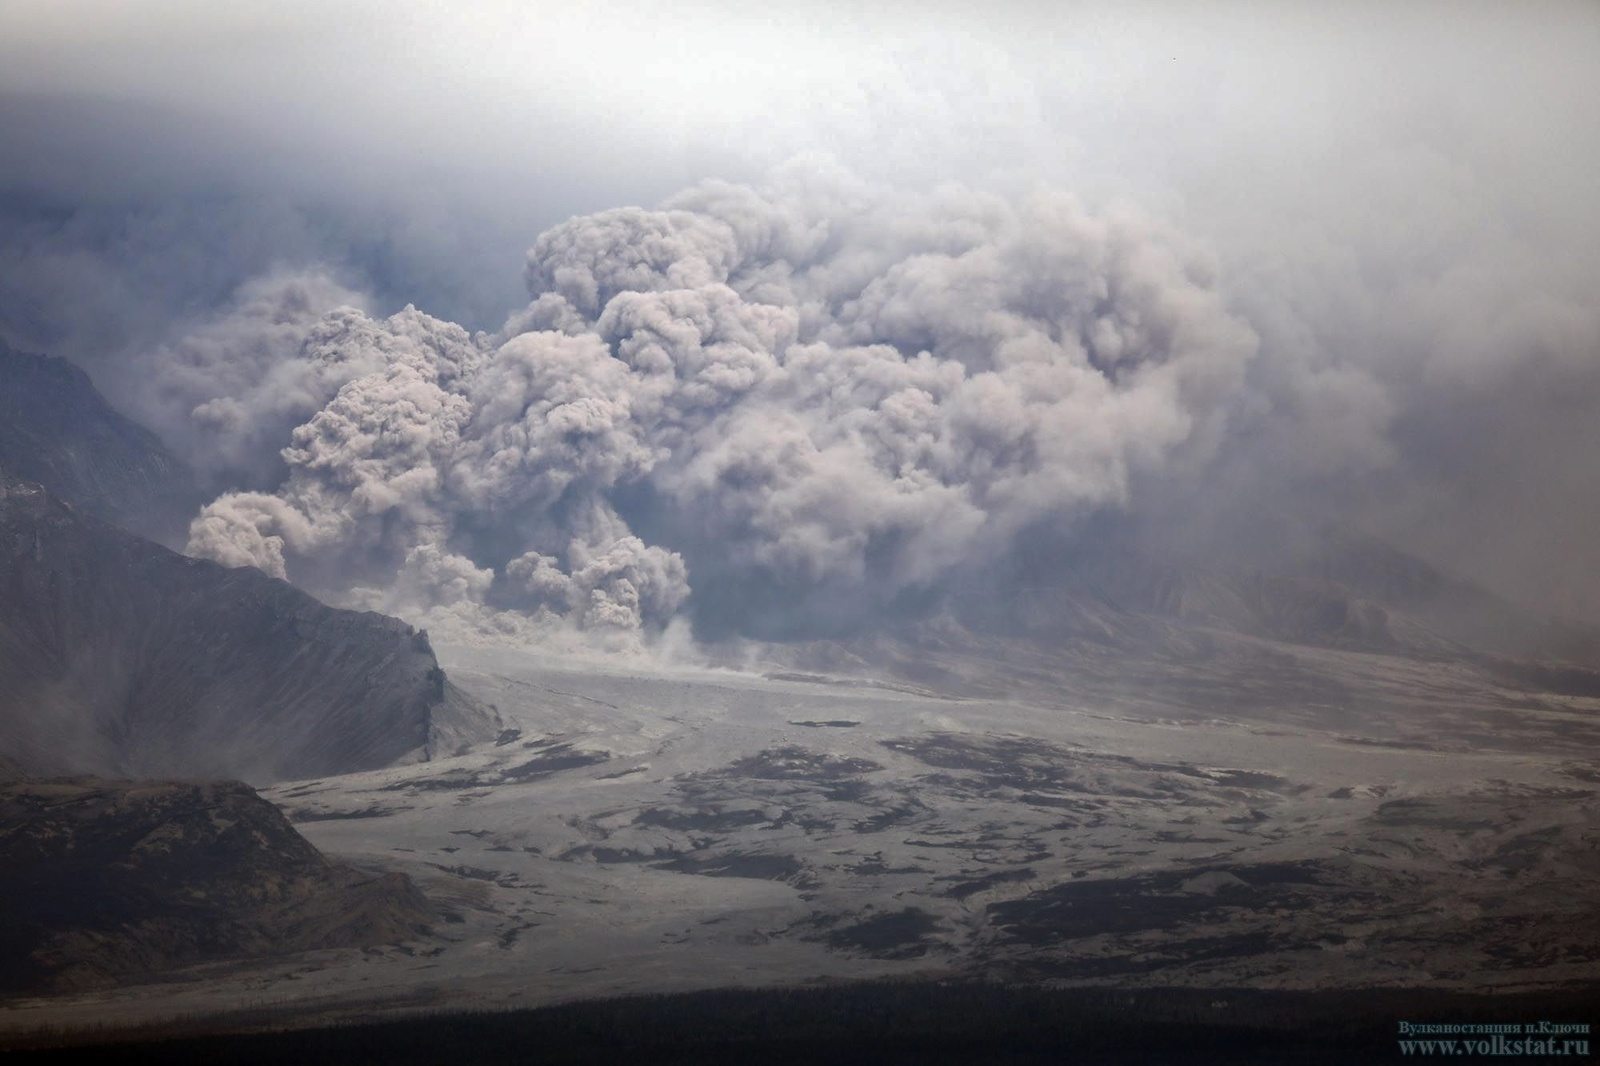 kamchatka volcano eruption, kamchatka volcano eruption june 2017, kamchatka volcano eruption video, kamchatka volcano eruption pictures